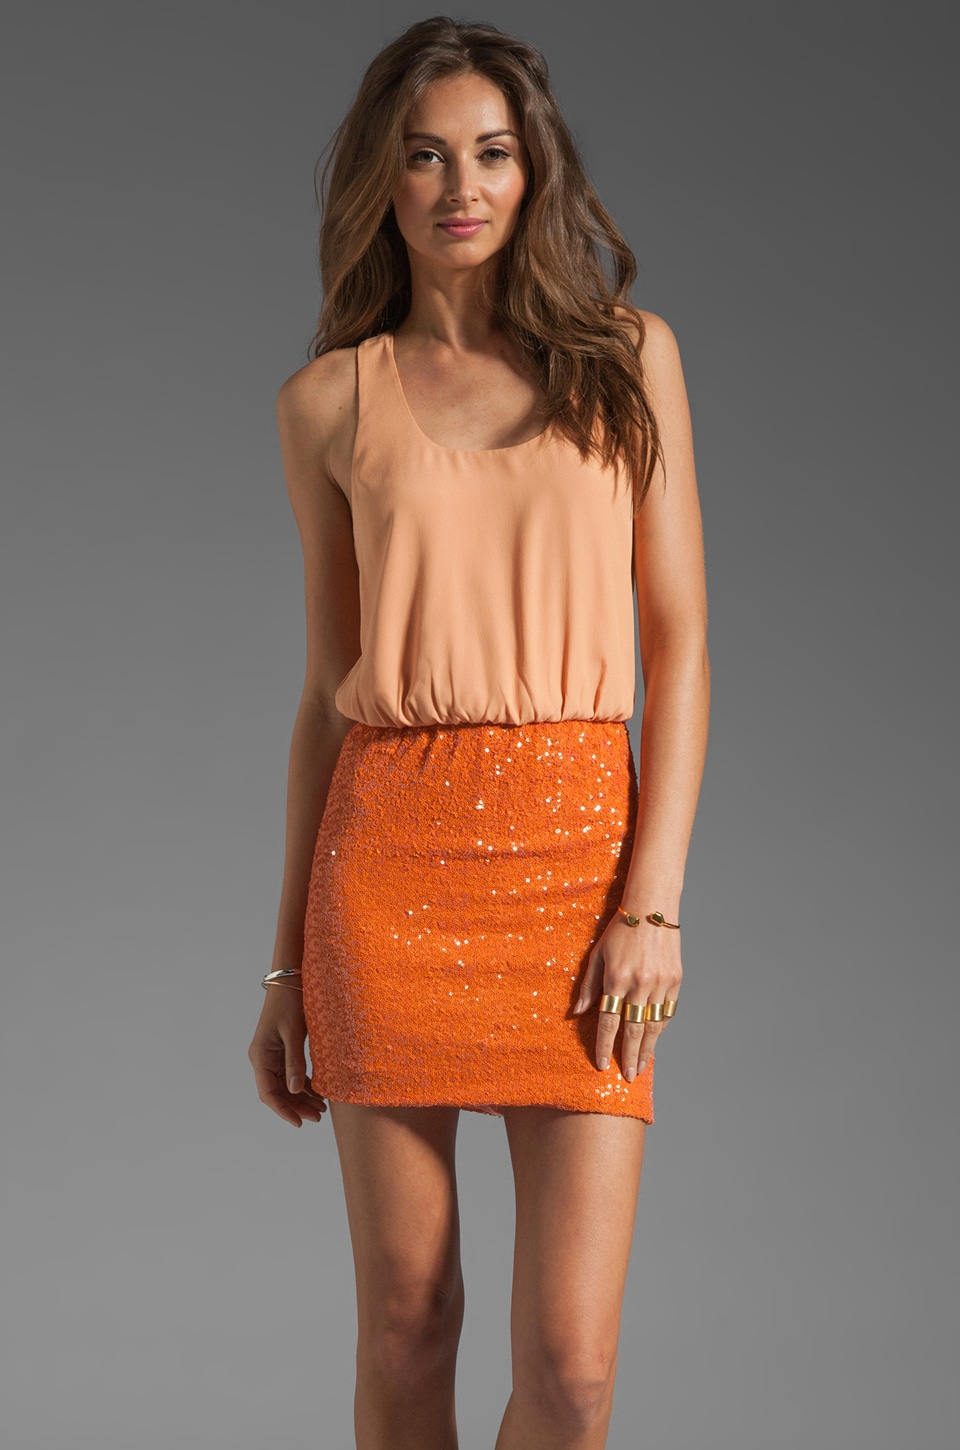 MM Couture by Miss Me Racerback Tank Dress with Sequin Bottom in Orange